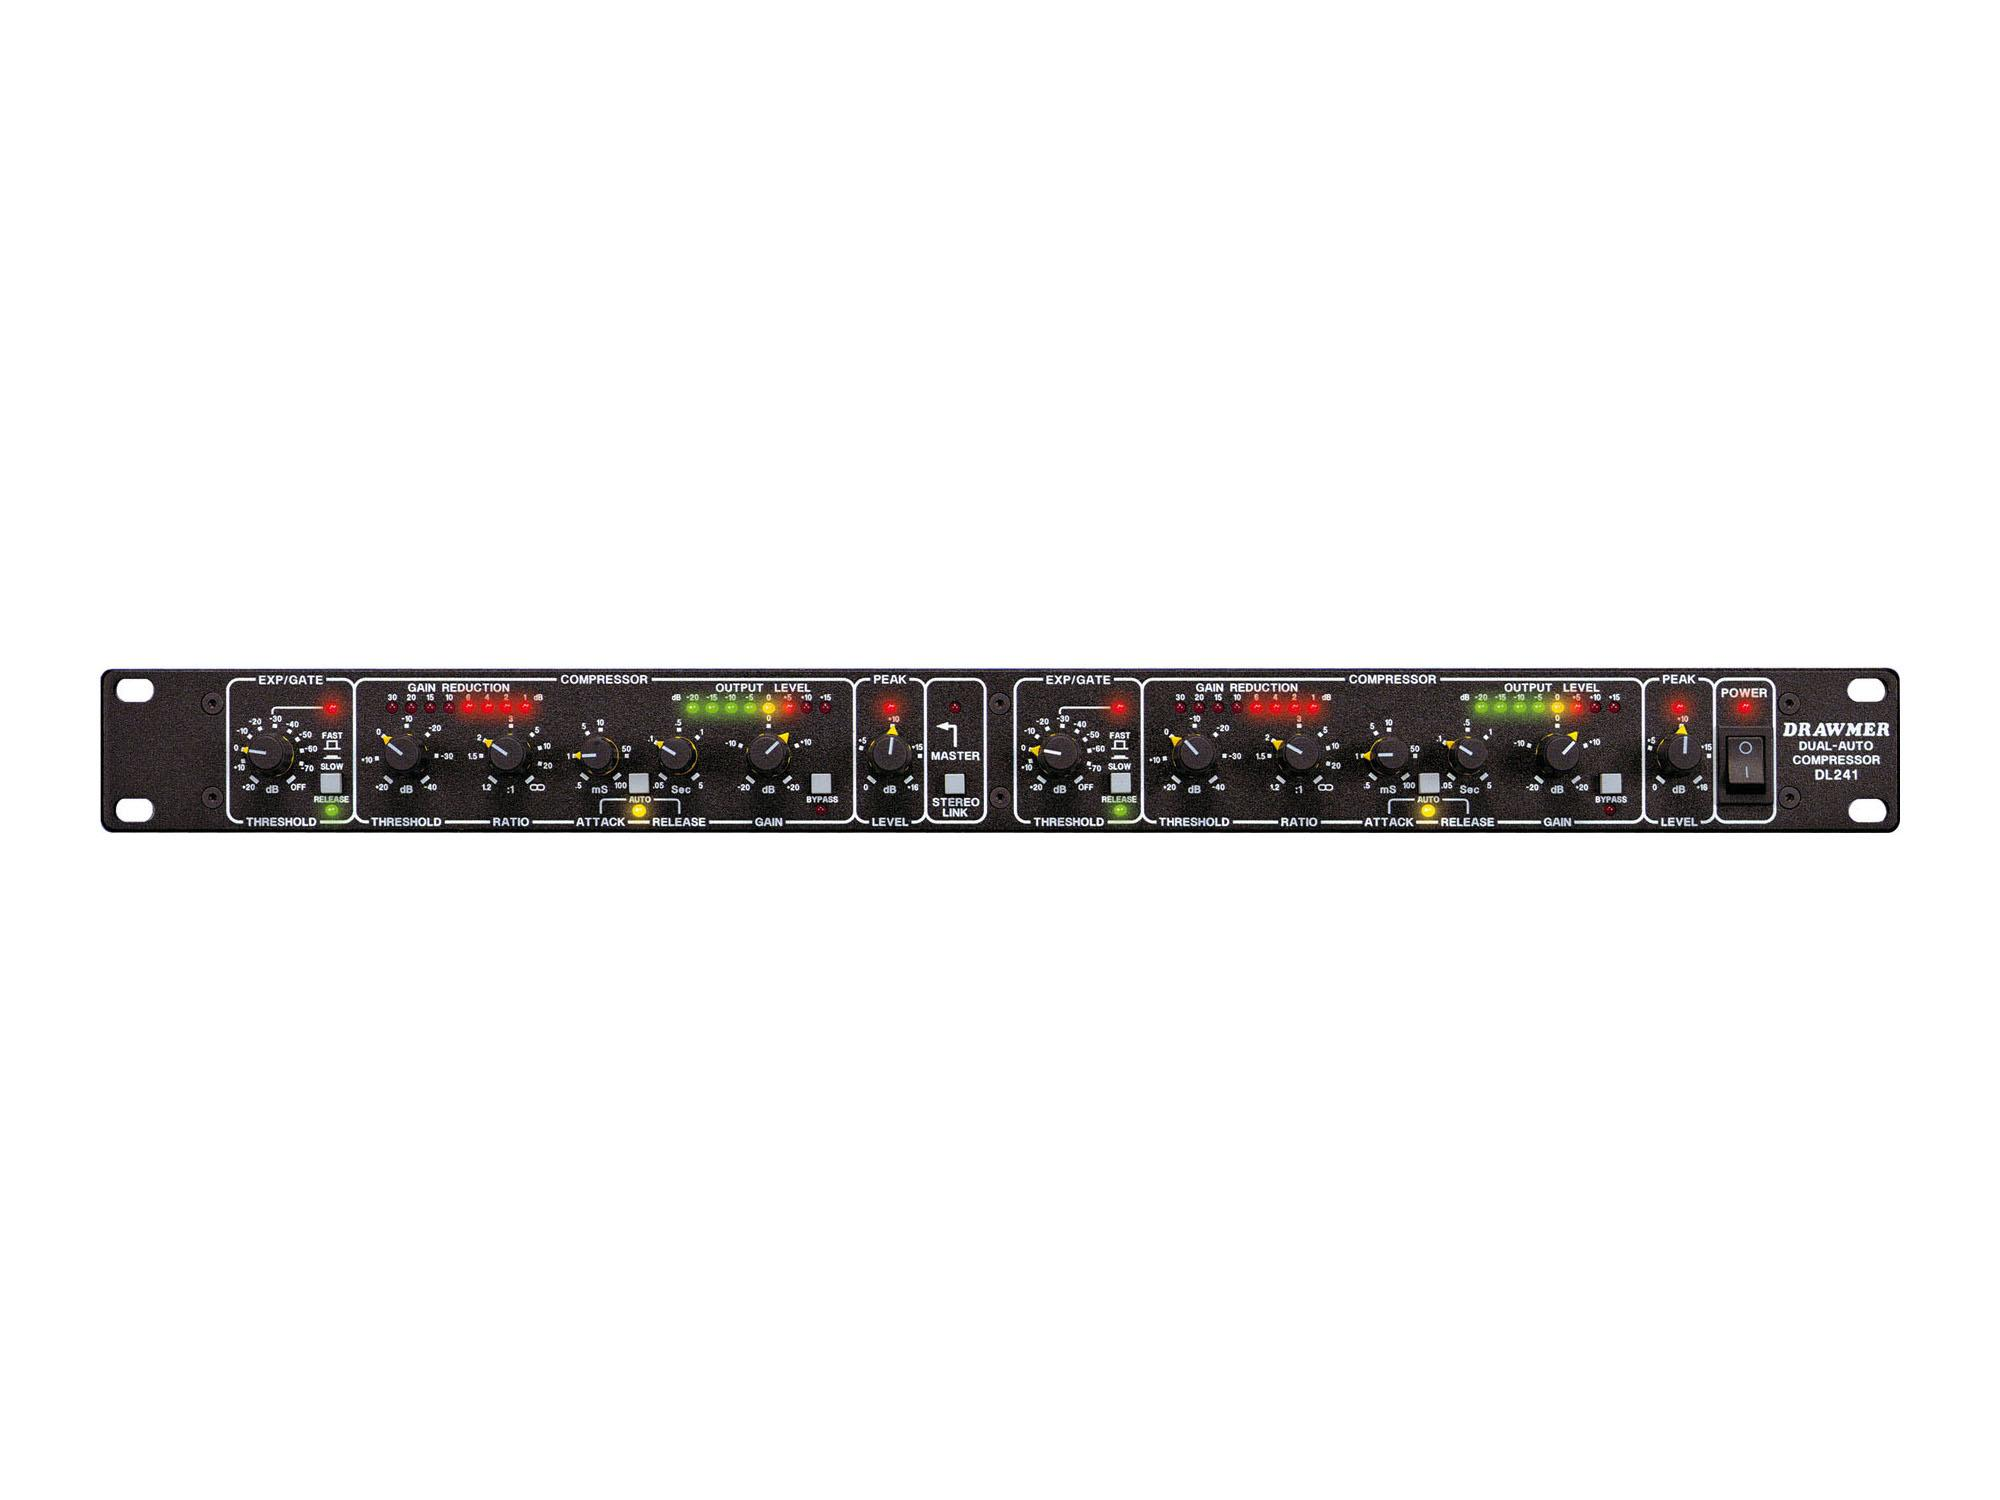 DL241 Dual Channel Auto Compressor with Gate/Limiter by Drawmer